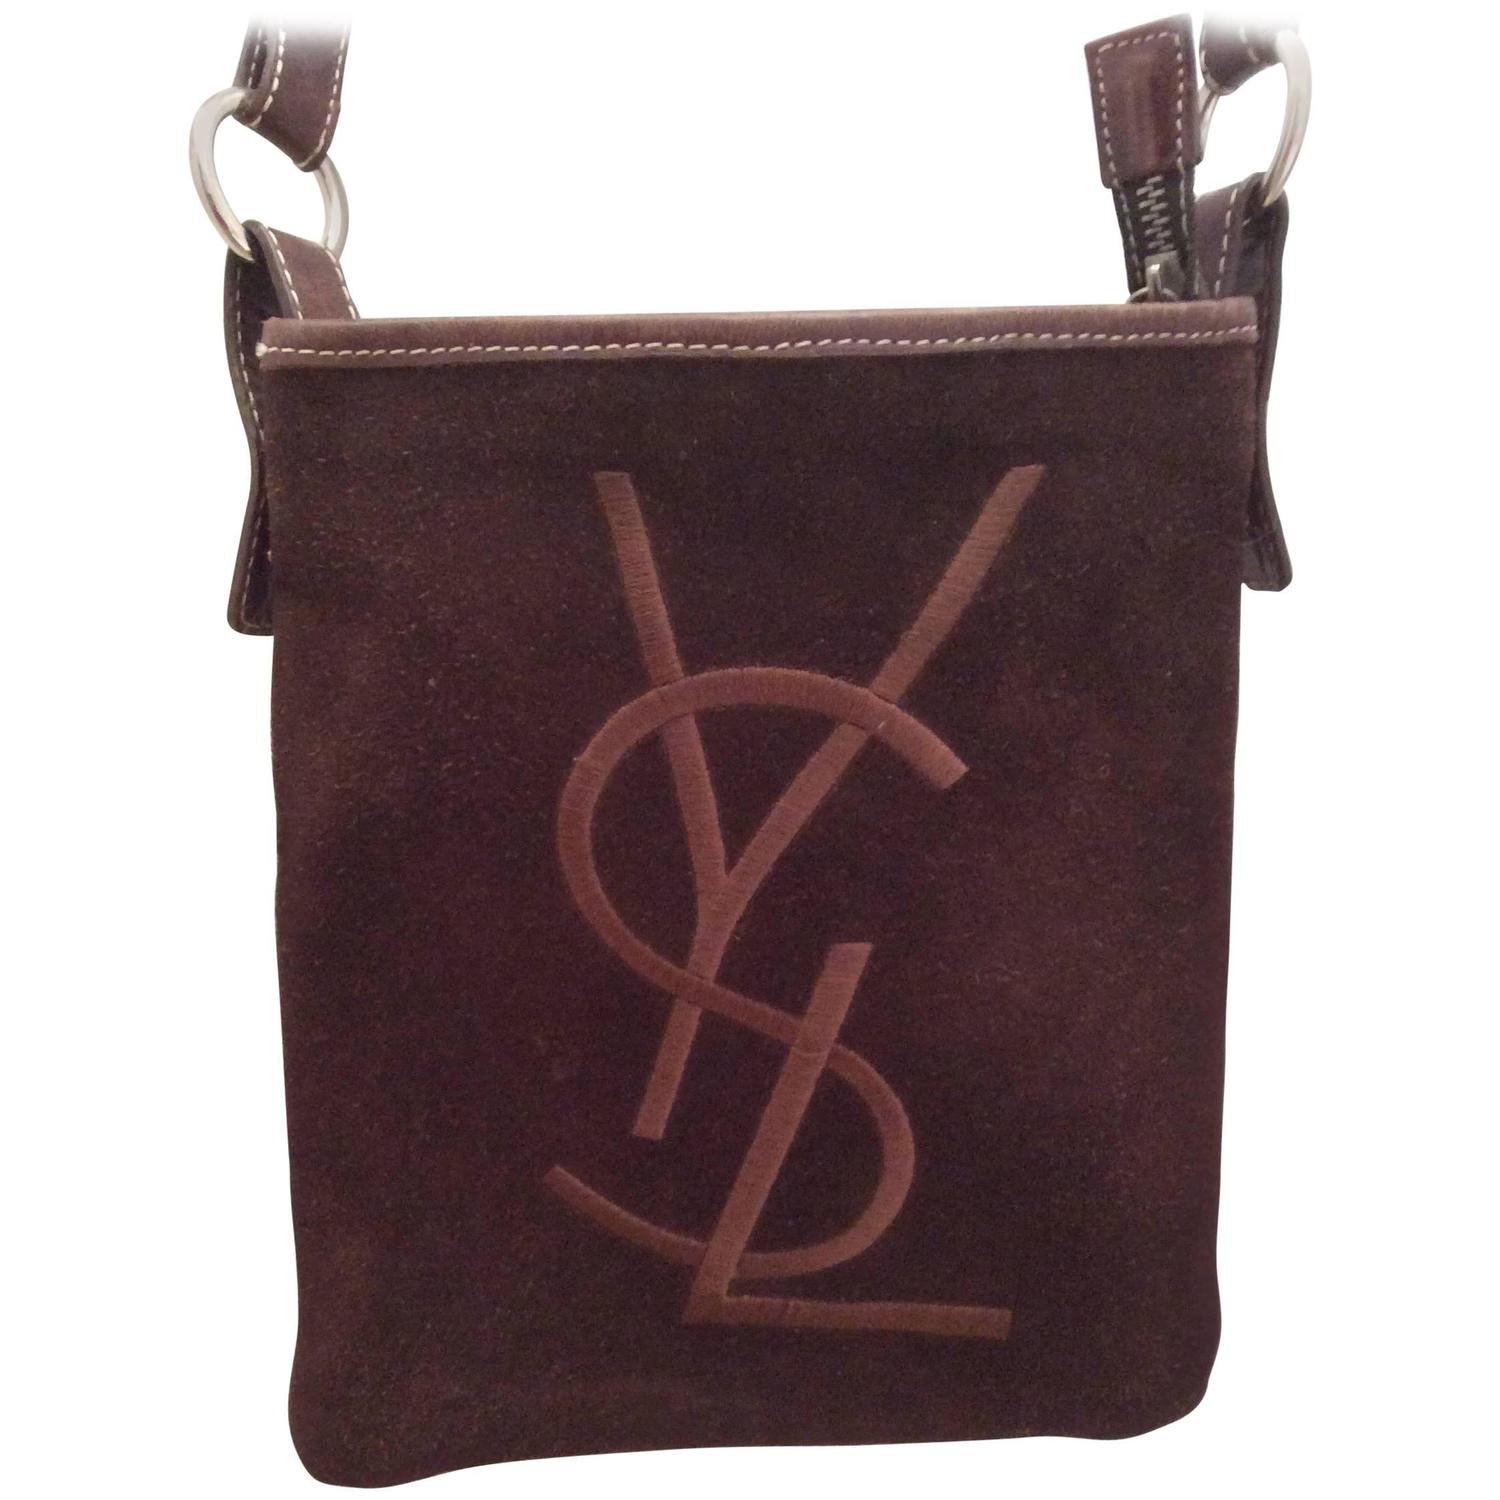 Ysl Crossbody Bag Replica 66